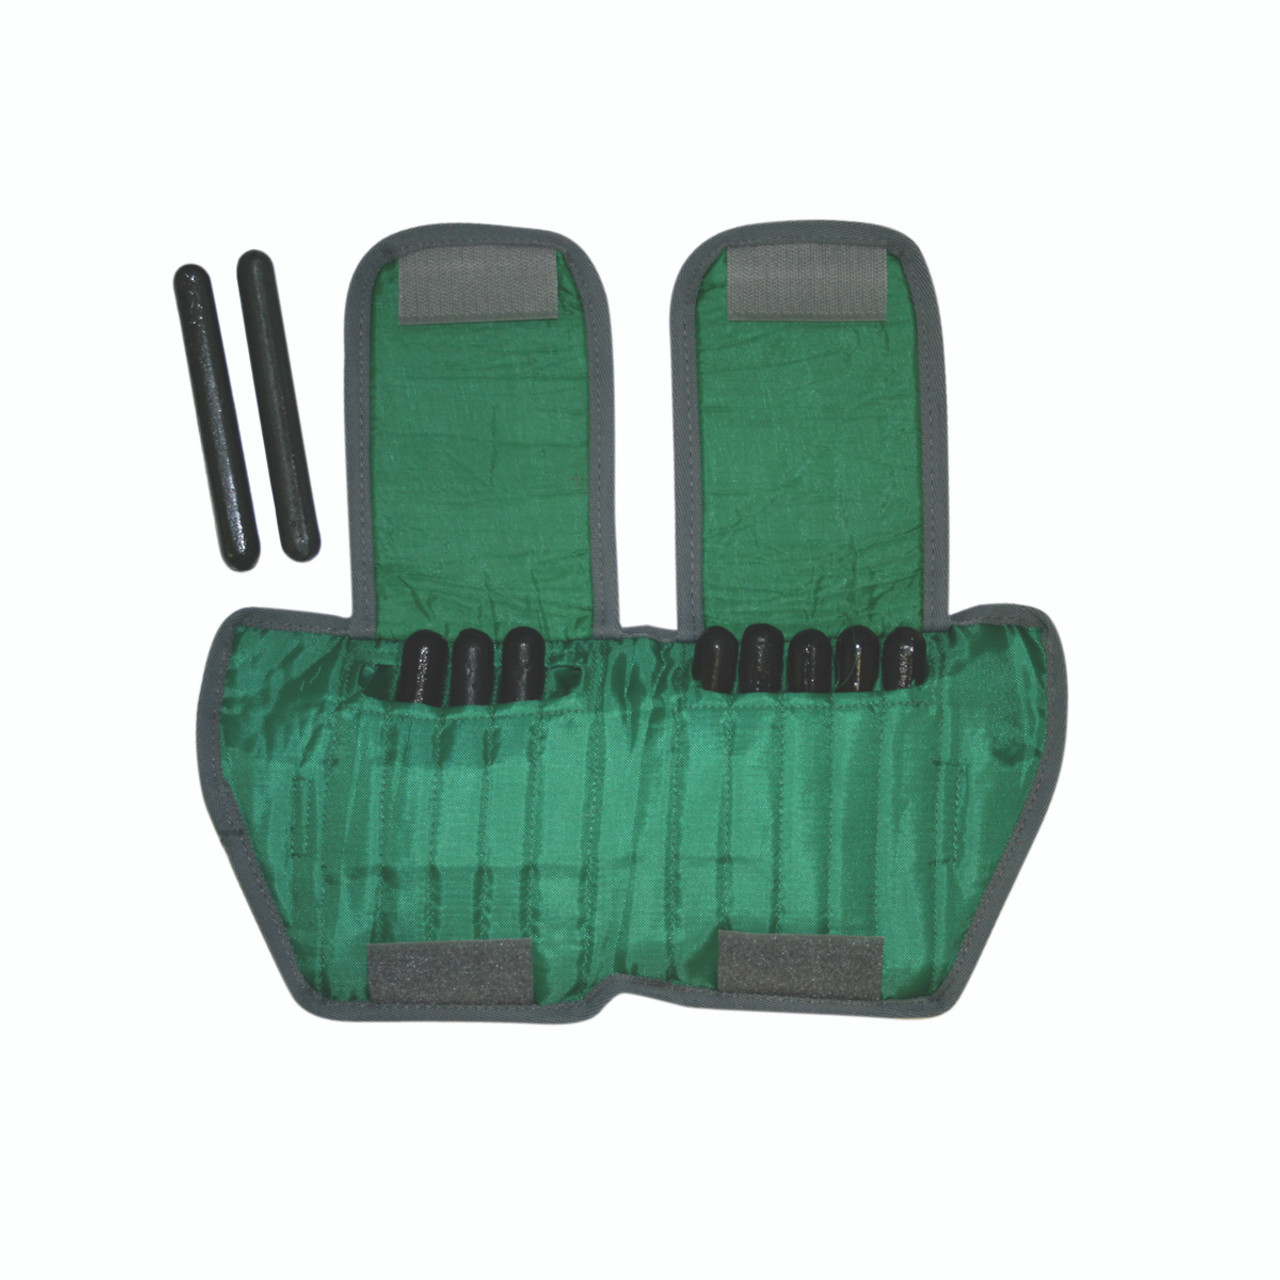 The Adjustable Cuff¨ ankle weight - 5 lb - 10 x 0.5 lb inserts - Green - each